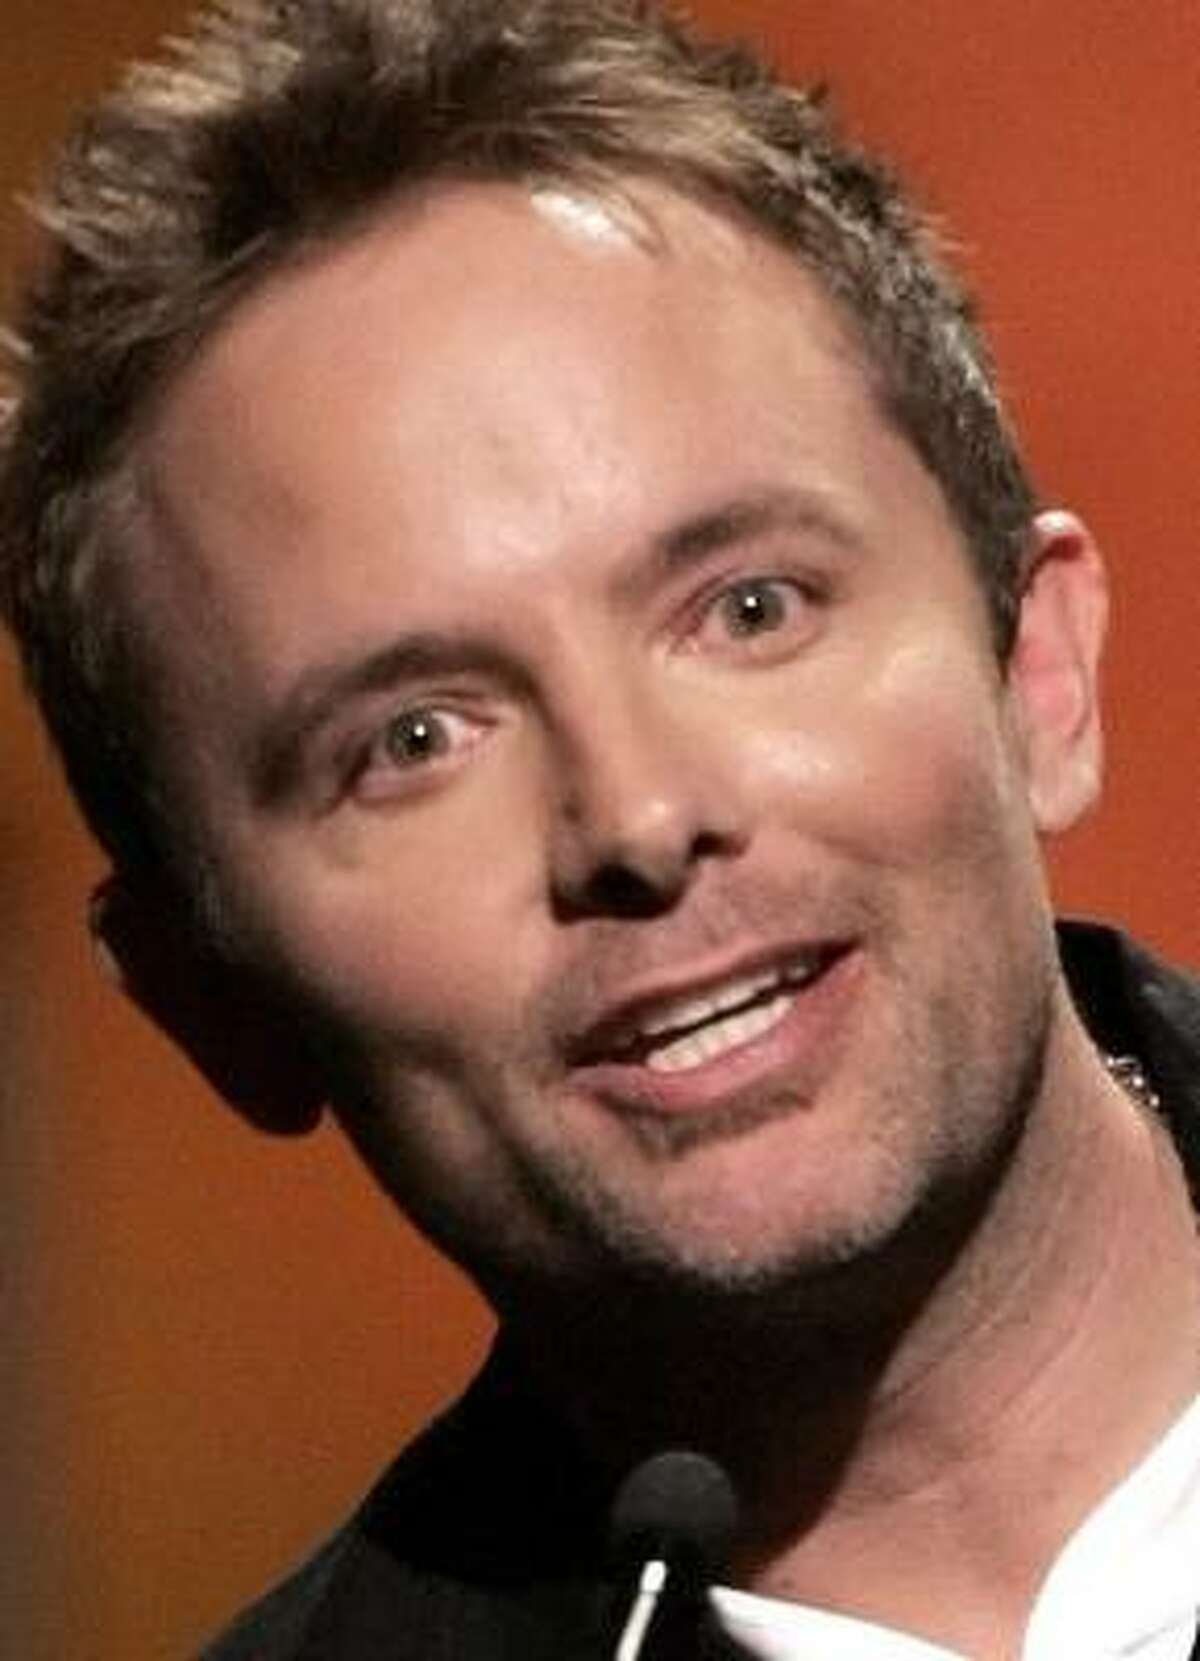 Chris Tomlin accepts the award for male vocalist of the year at the Dove Awards show.